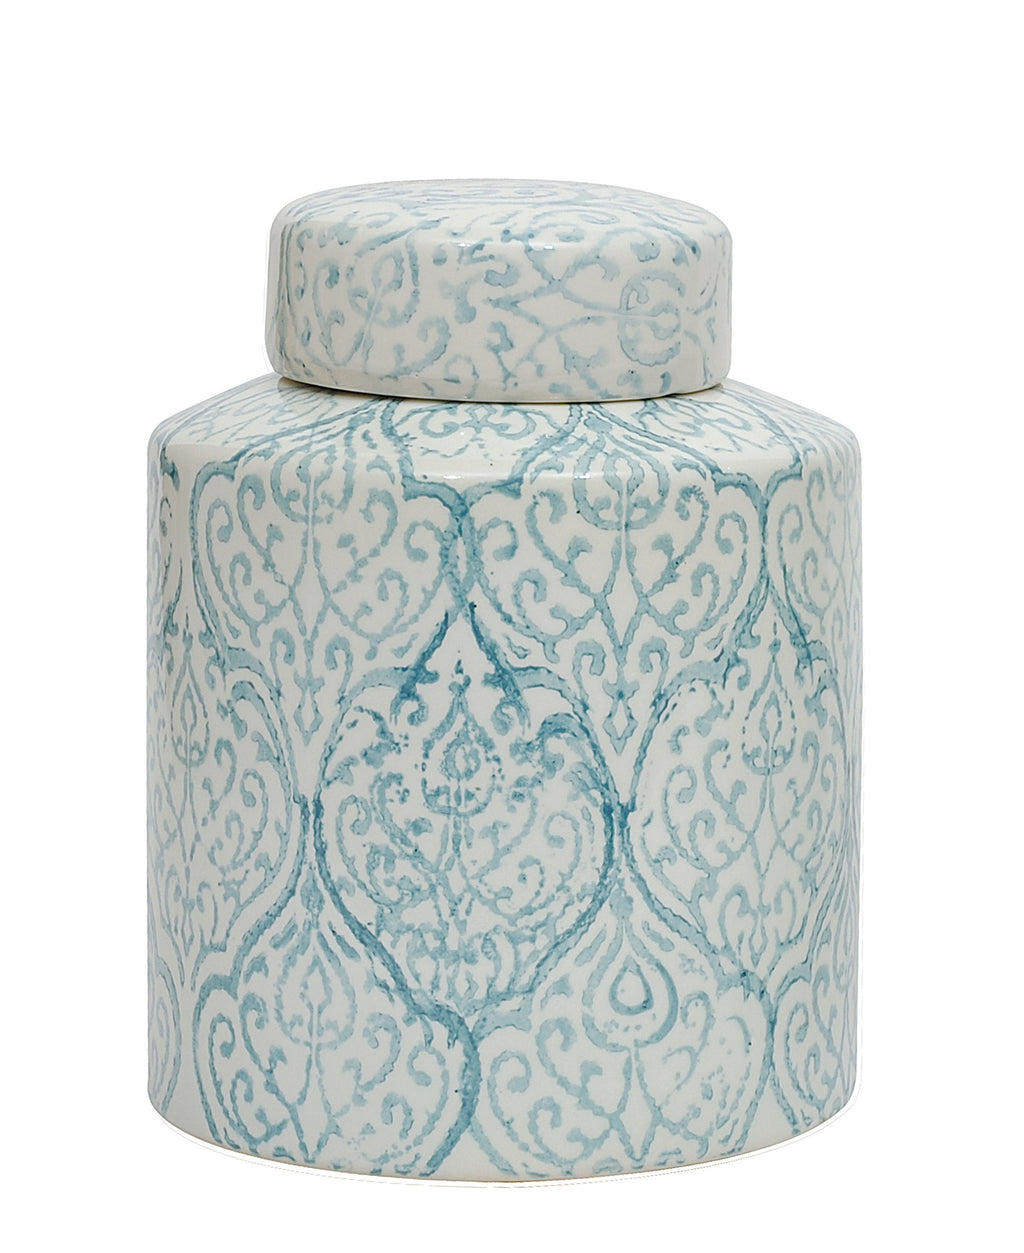 Blue & White Decorative Ceramic Ginger Jar with Lid